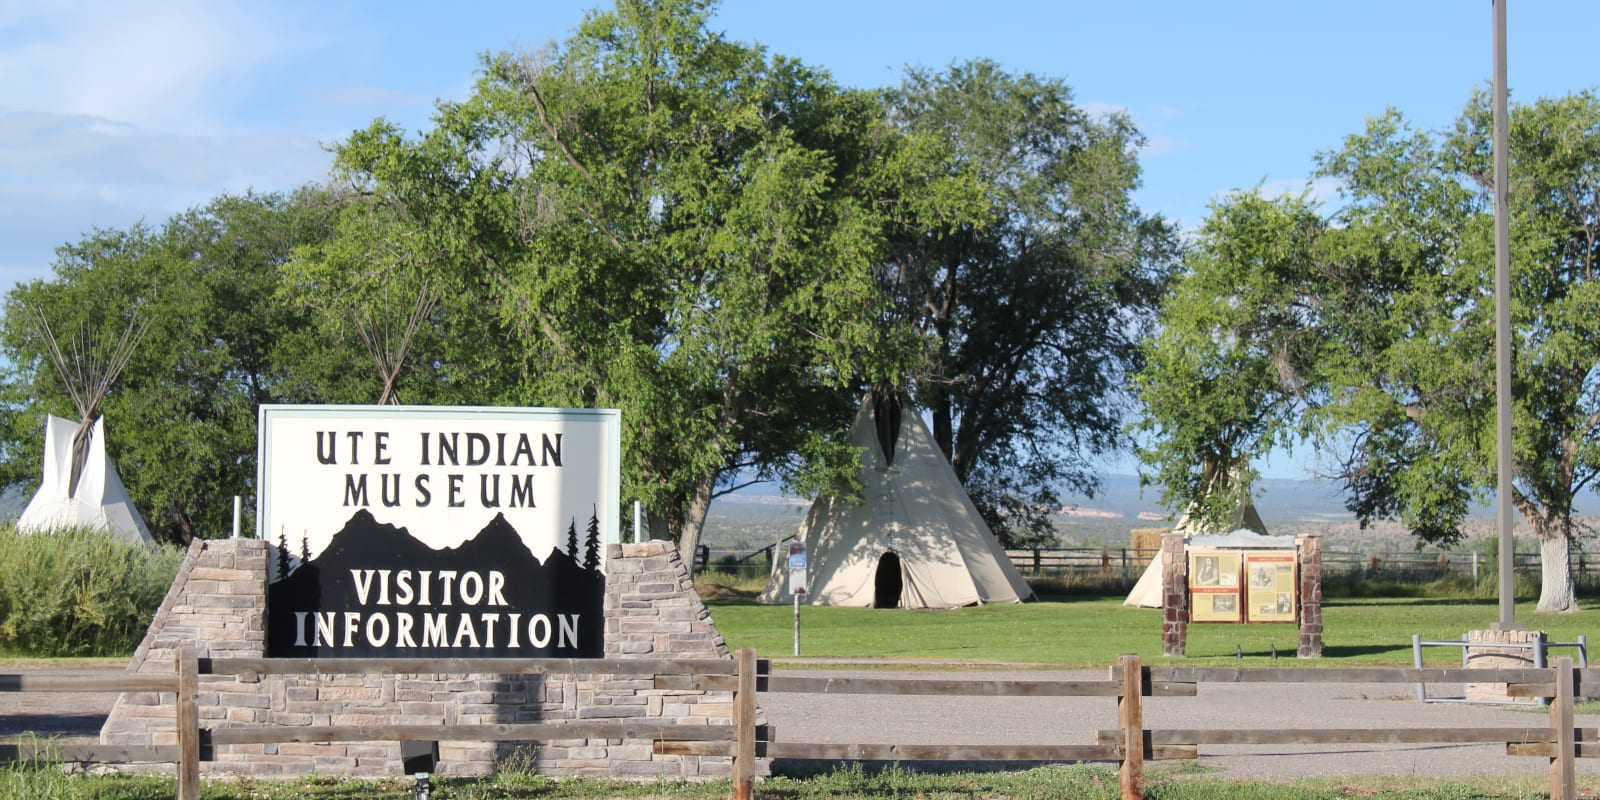 Ute Indian Museum in Montrose, CO